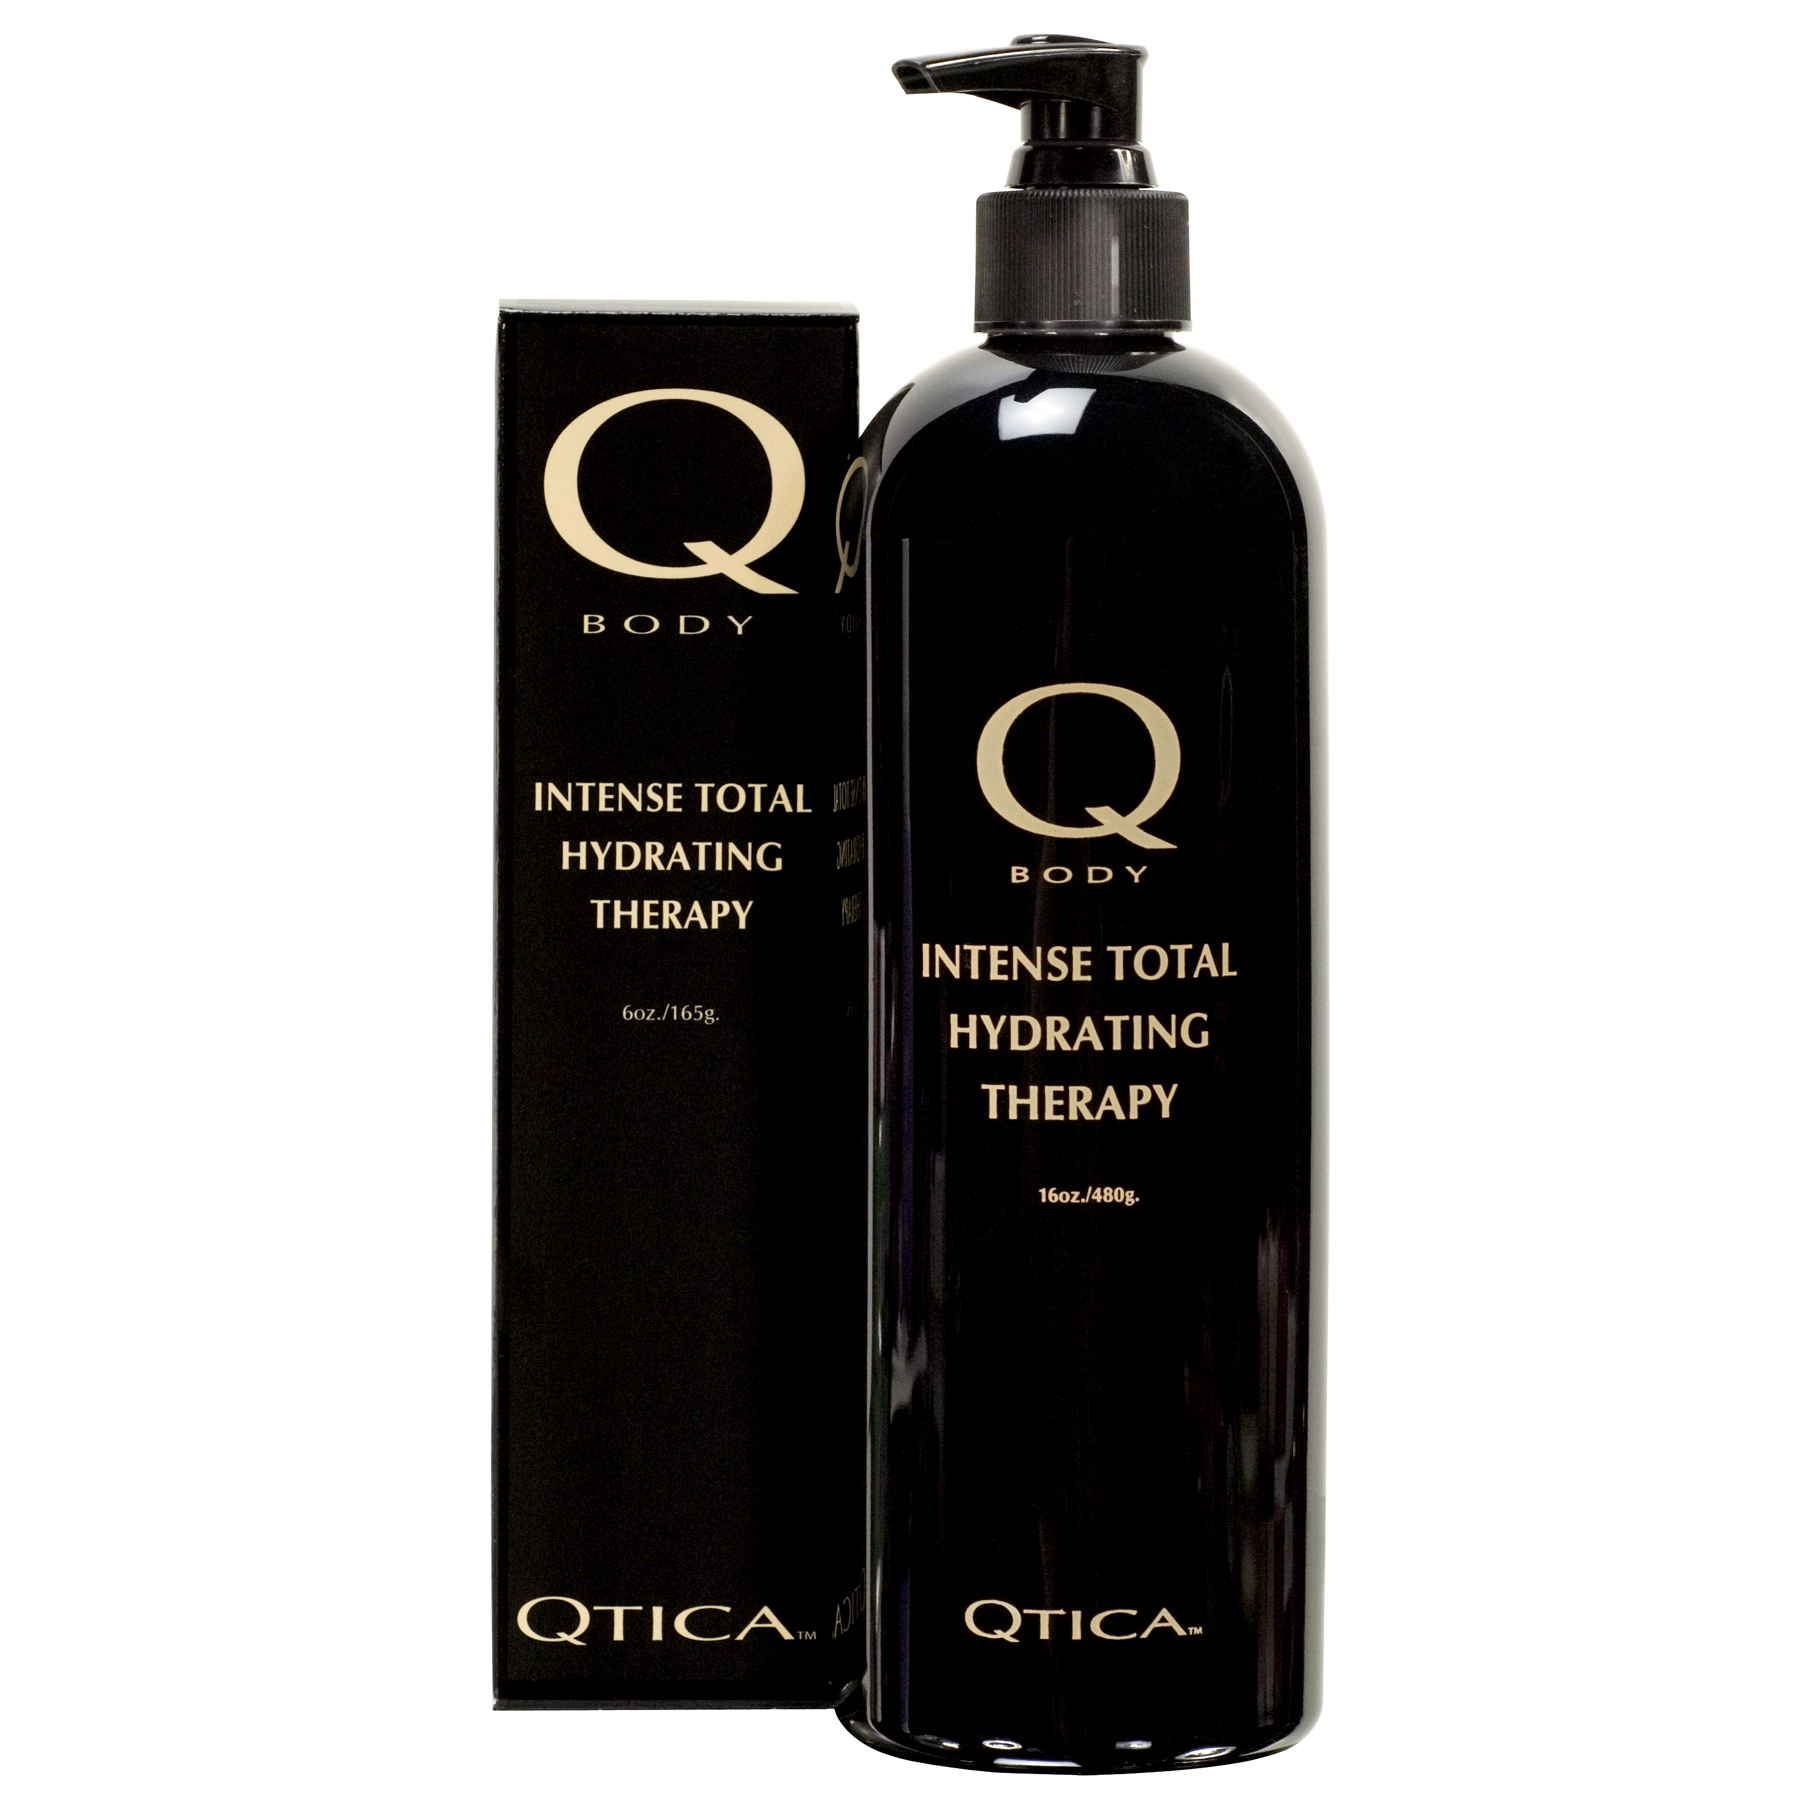 Qtica Intense Total Hydrating Therapy (Large) product-reel